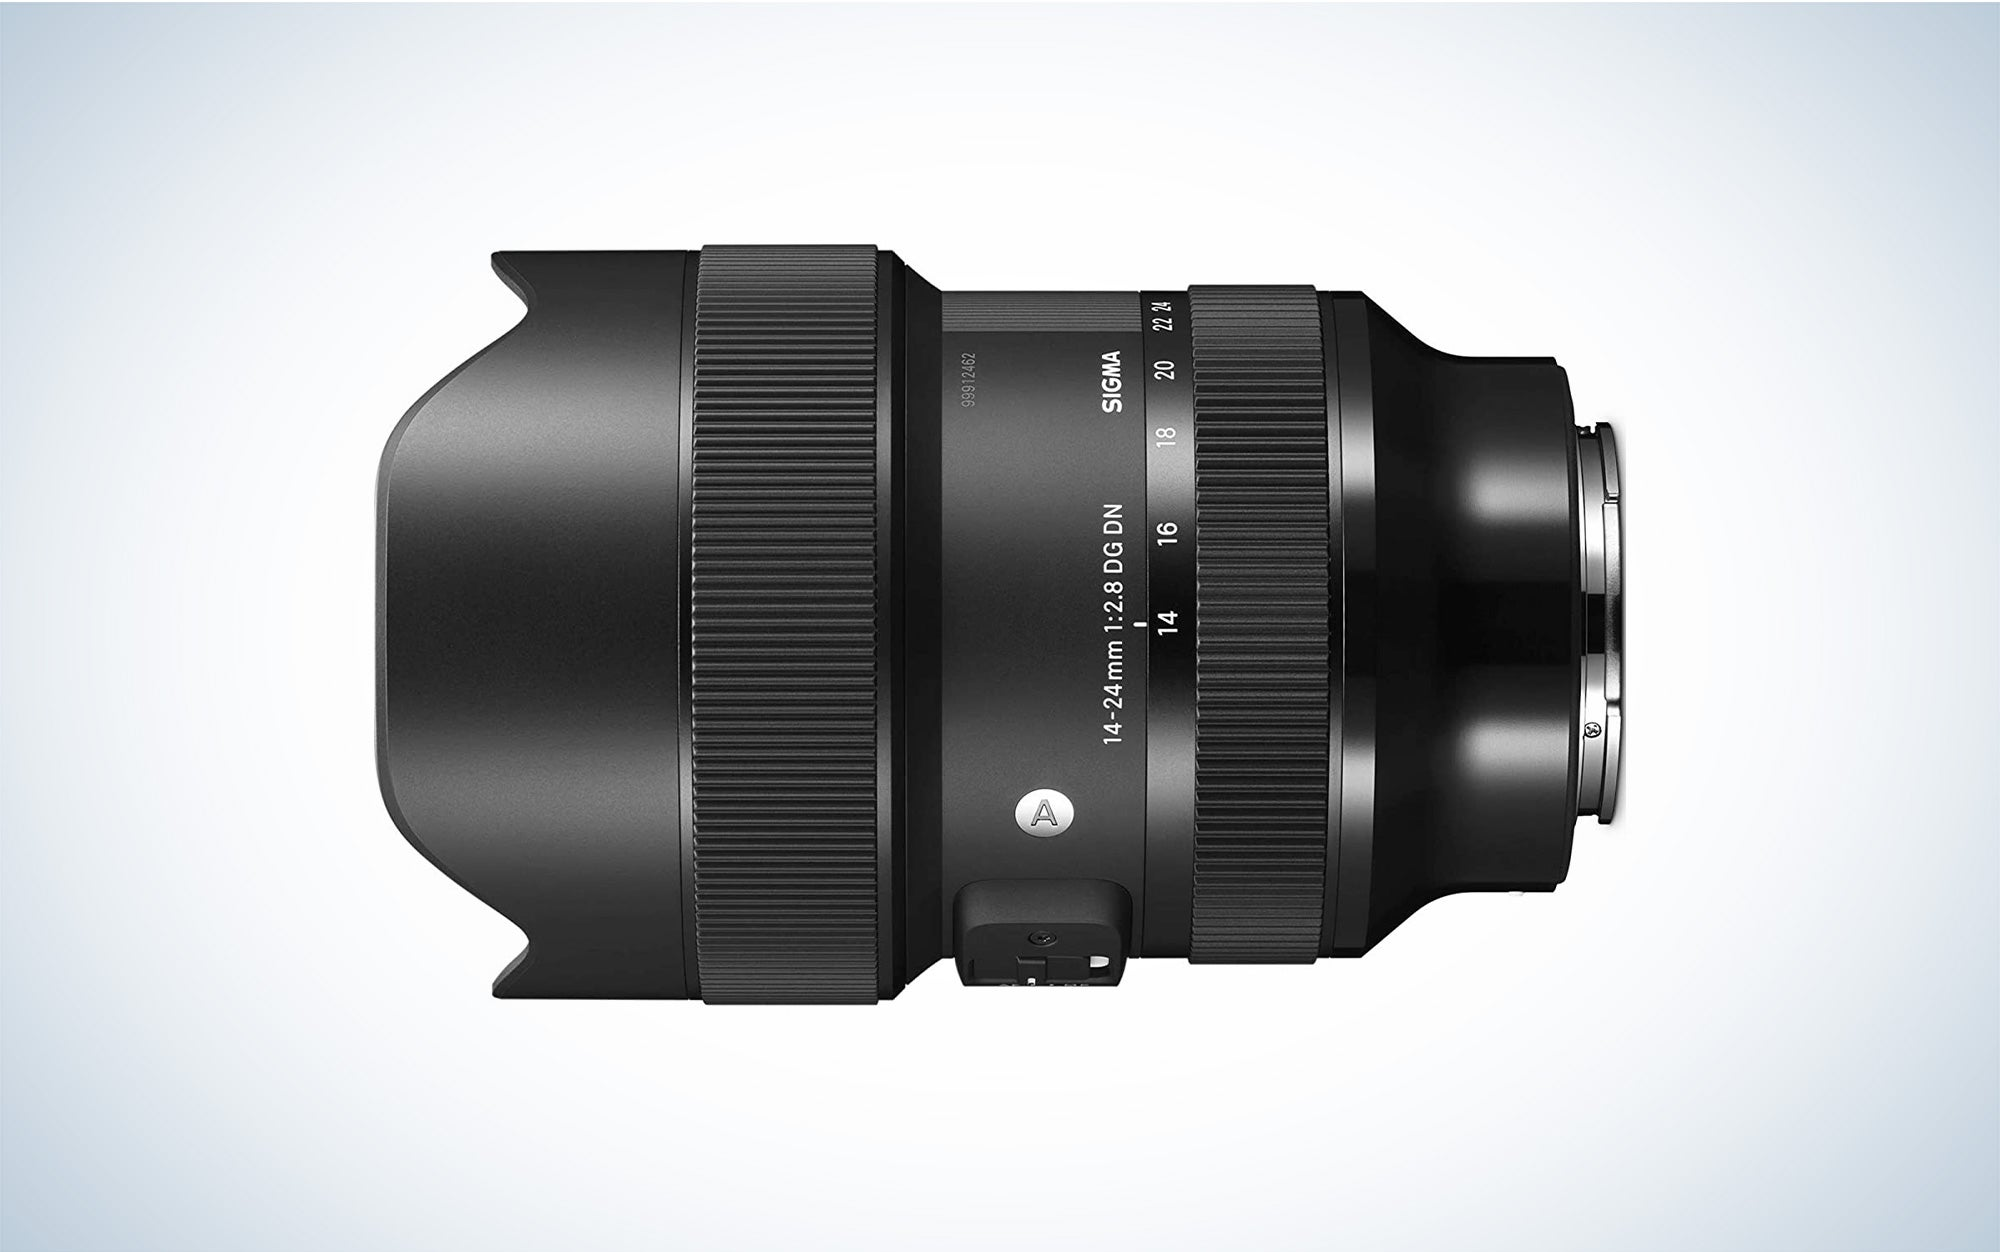 Sigma wide-angle lens is the best wide angle lens.